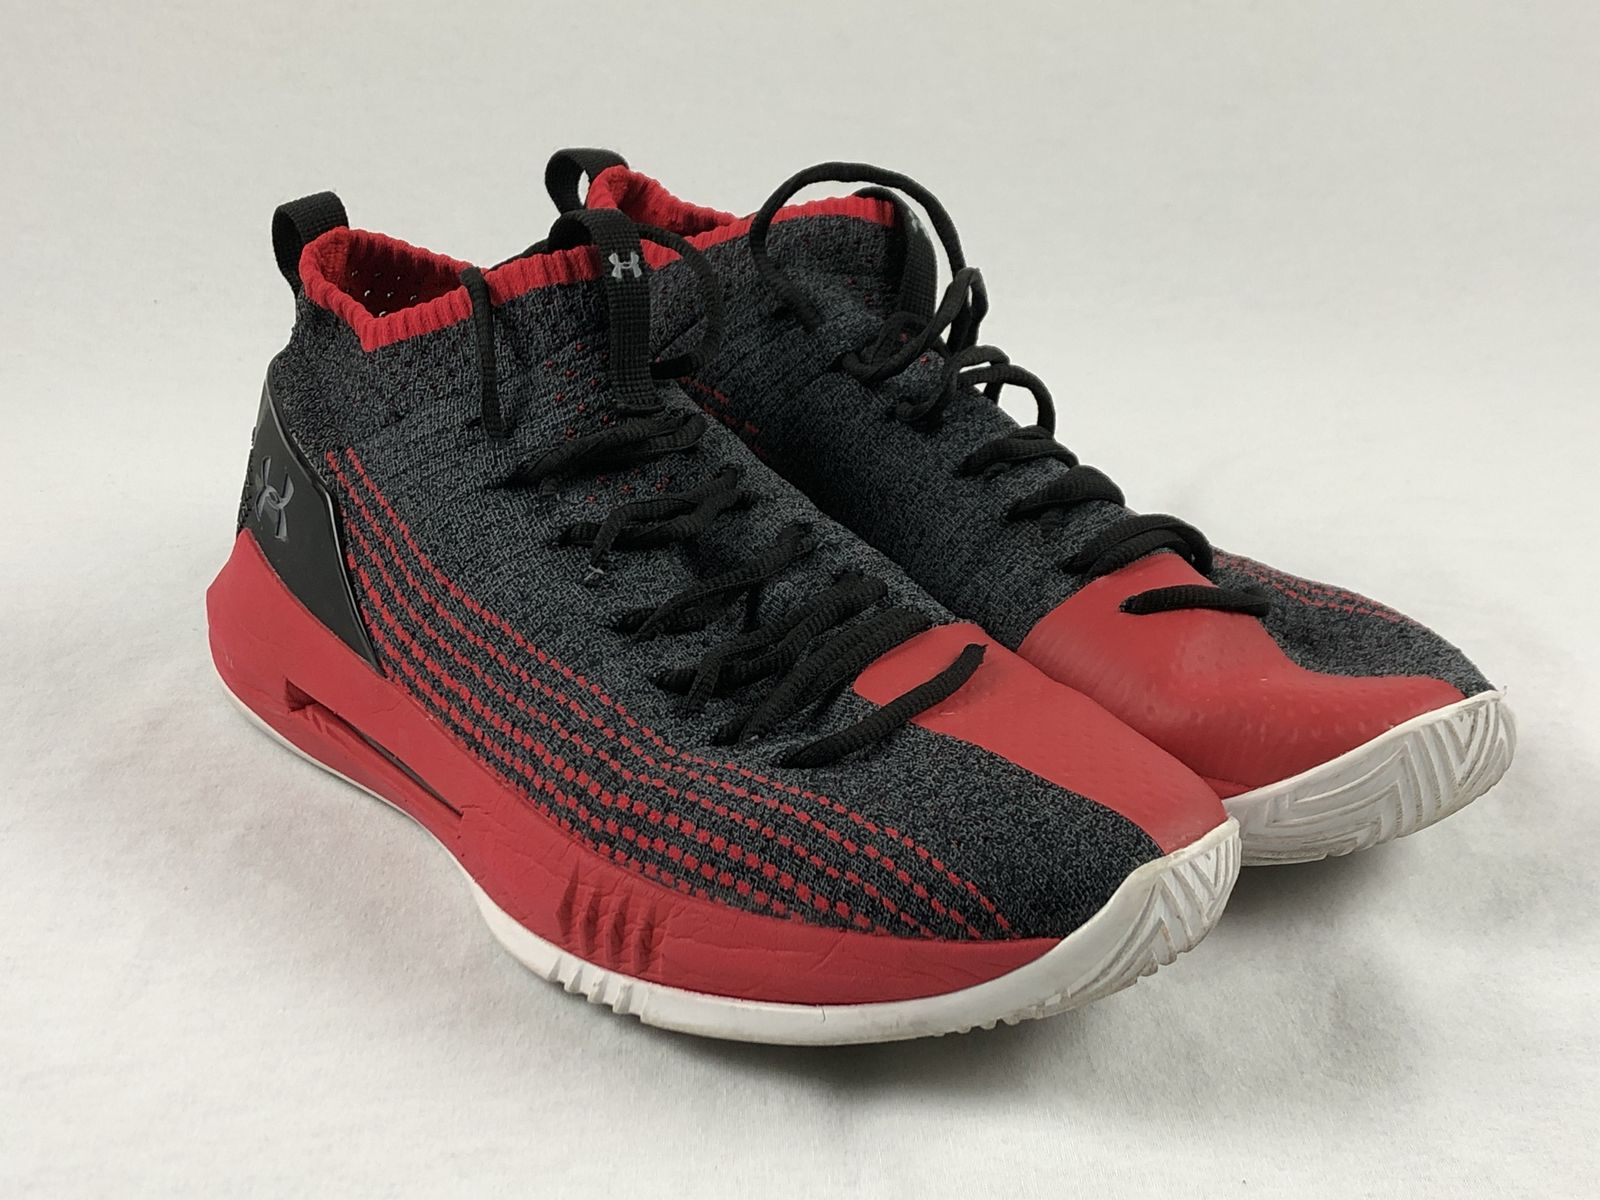 a20db431eab Details about Under Armour Heat Seeker - Red Gray Basketball Shoes (Men s  14) - Used